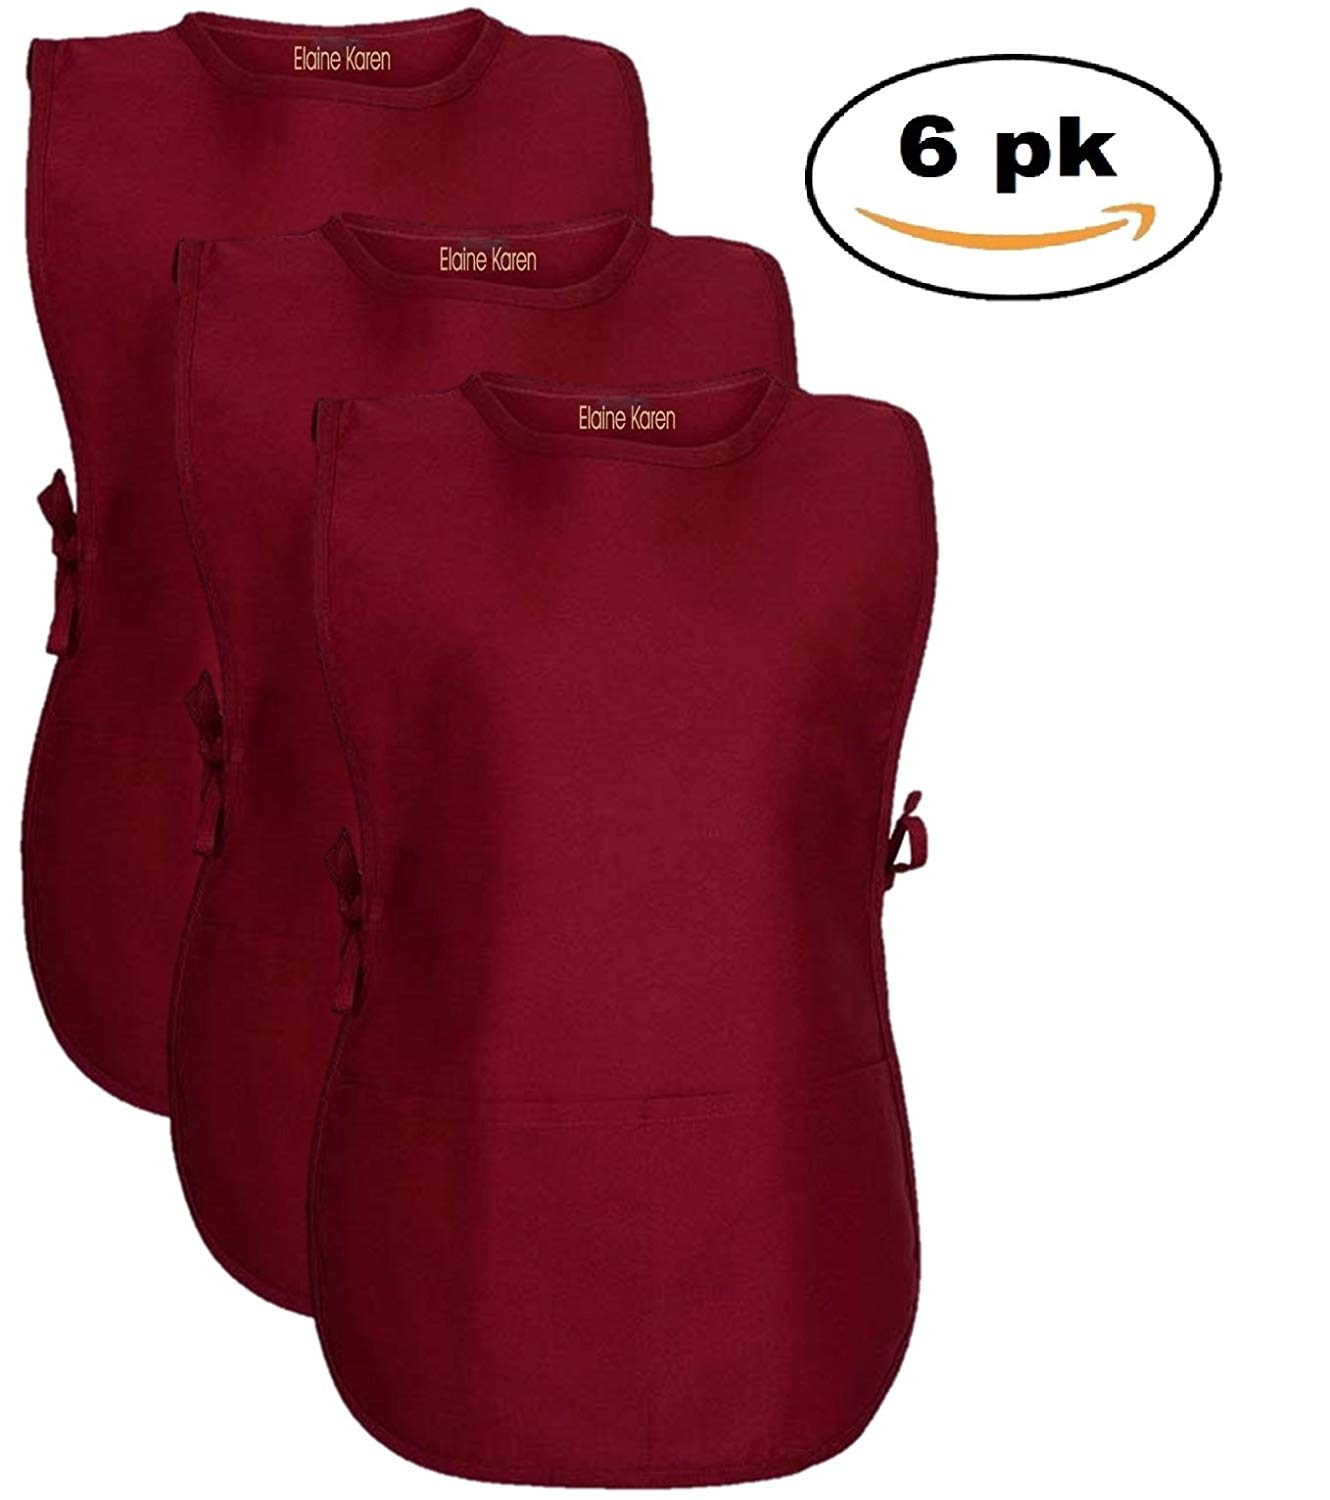 Elaine Karen Men's Women's Unisex Cobbler Chef Apron Art Smock with 2 Pockets, 6Pk - X Large - BURGUNDY